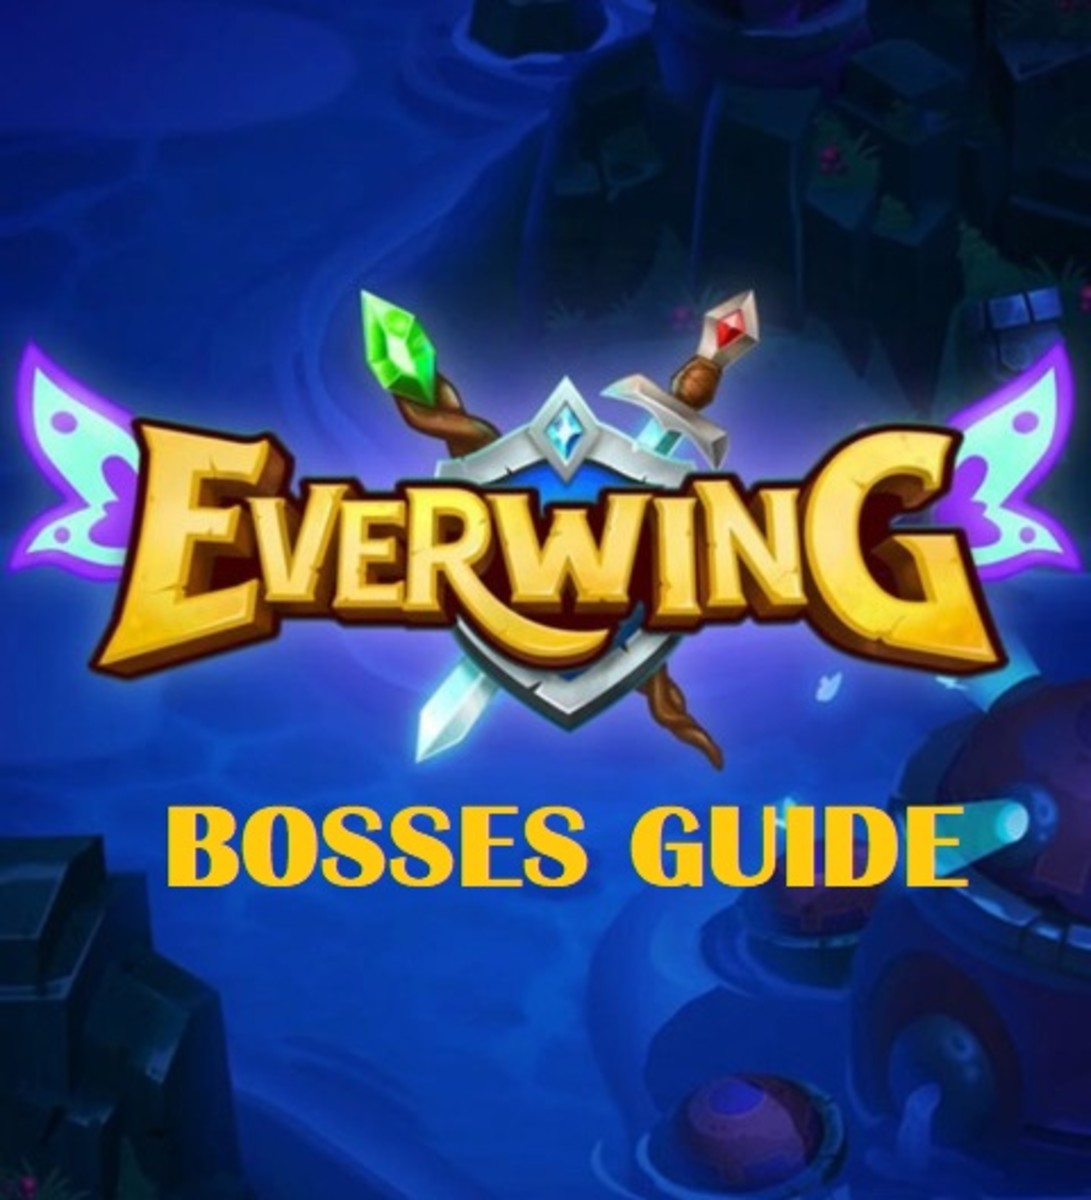 EverWing: Bosses Guide